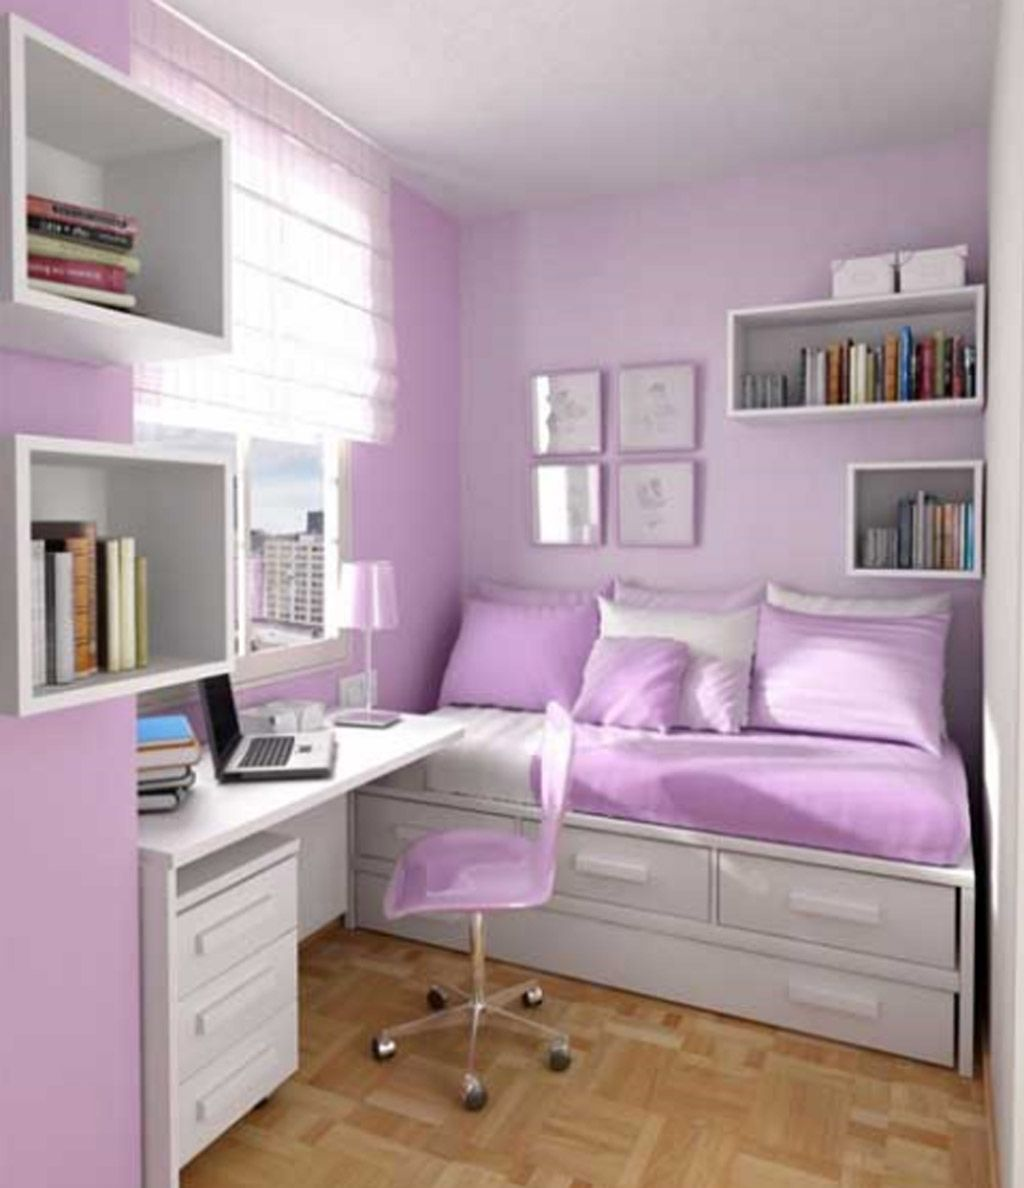 cute bedroom ideas for teenage girls best interior design blogs fashion pinterest